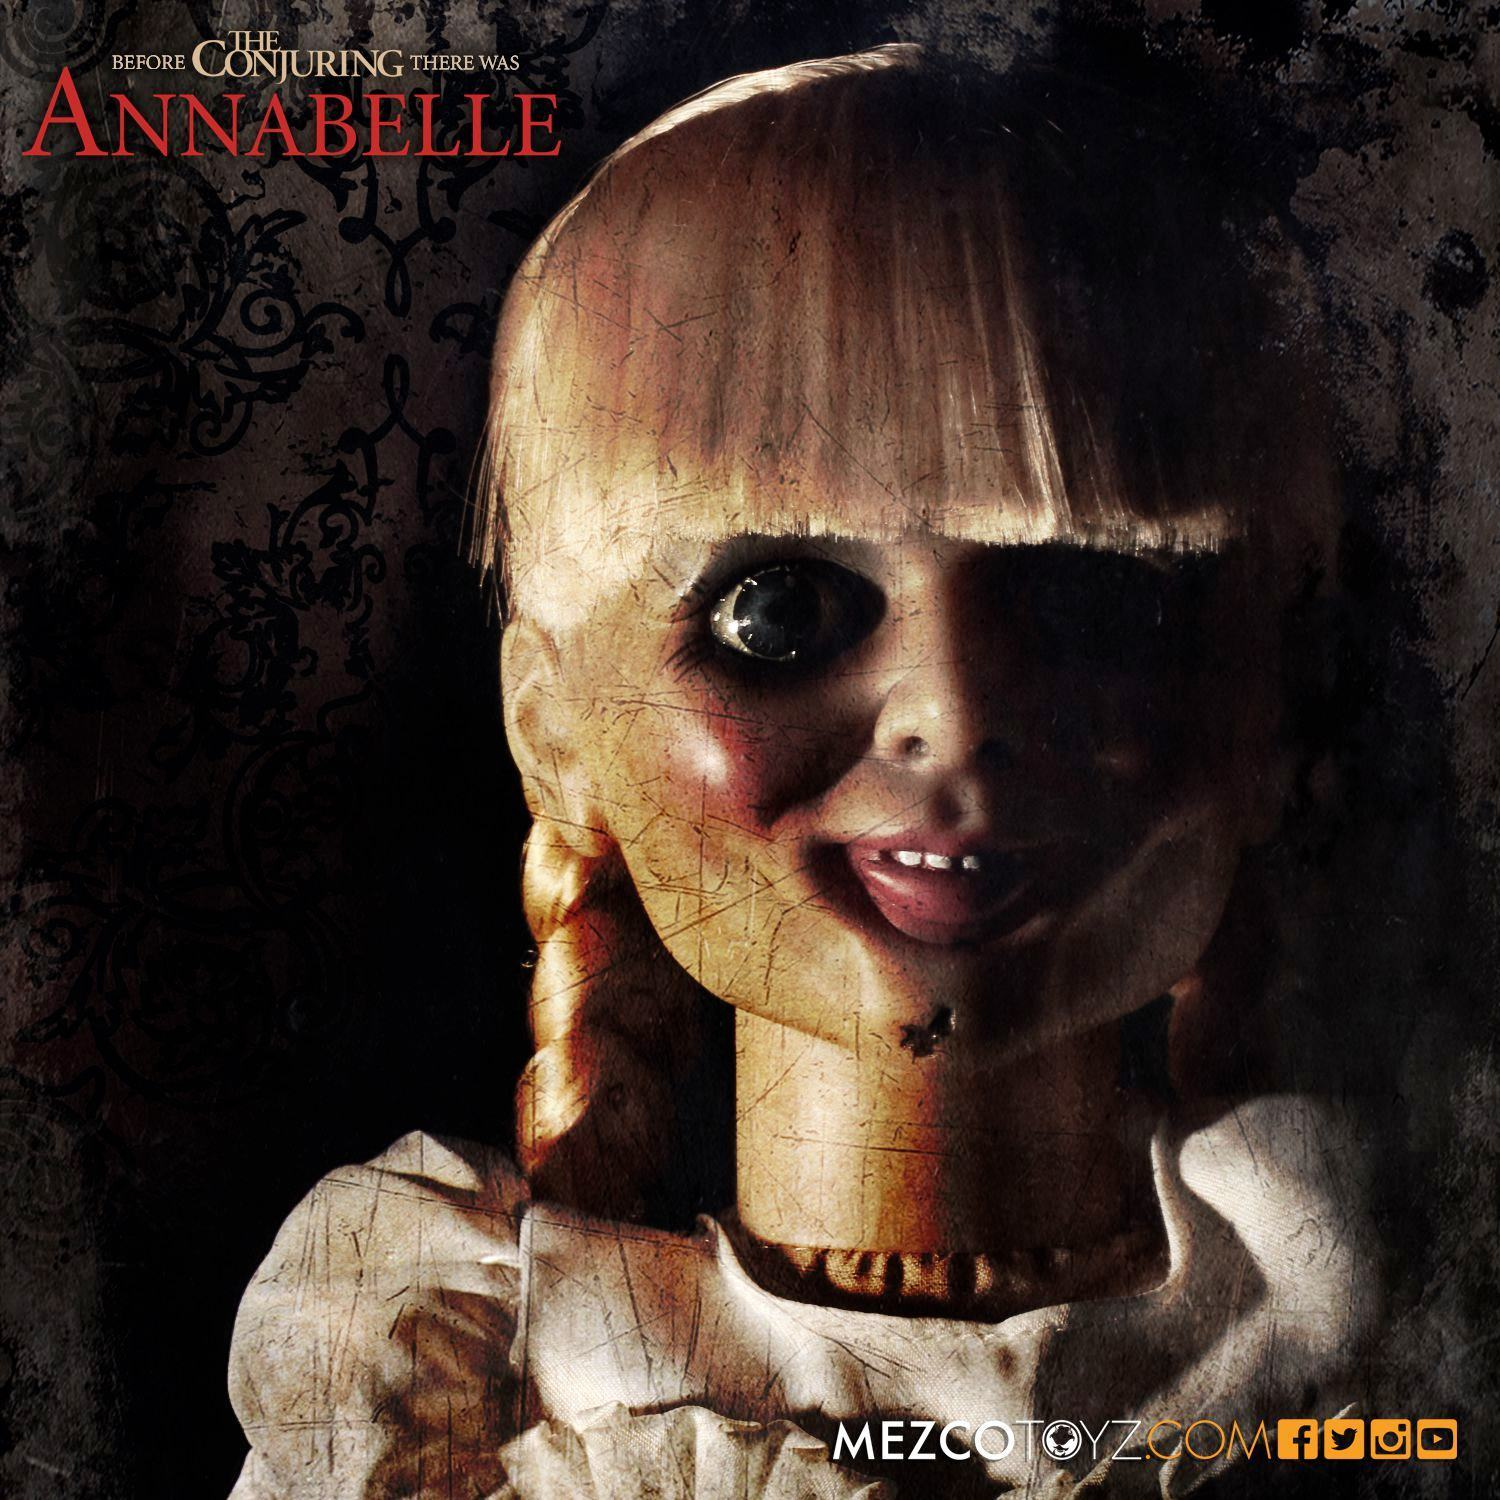 Boneca-Assombrada-Annabelle-Doll-Scaled-Prop-Replica-04